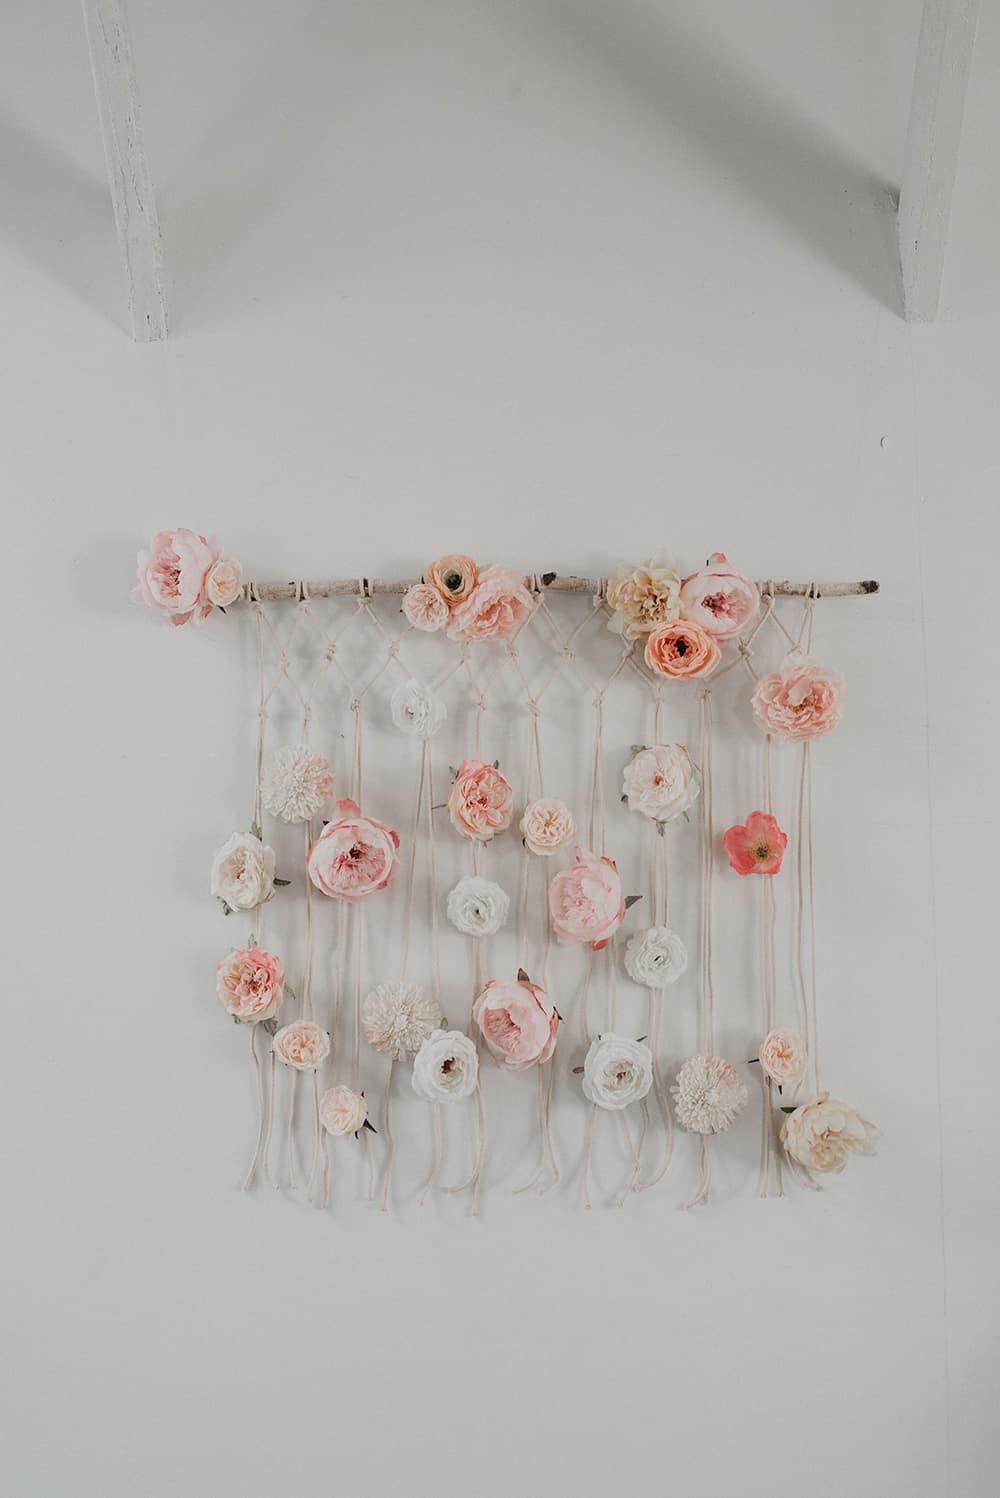 Diy macrame wall hanger with flowers